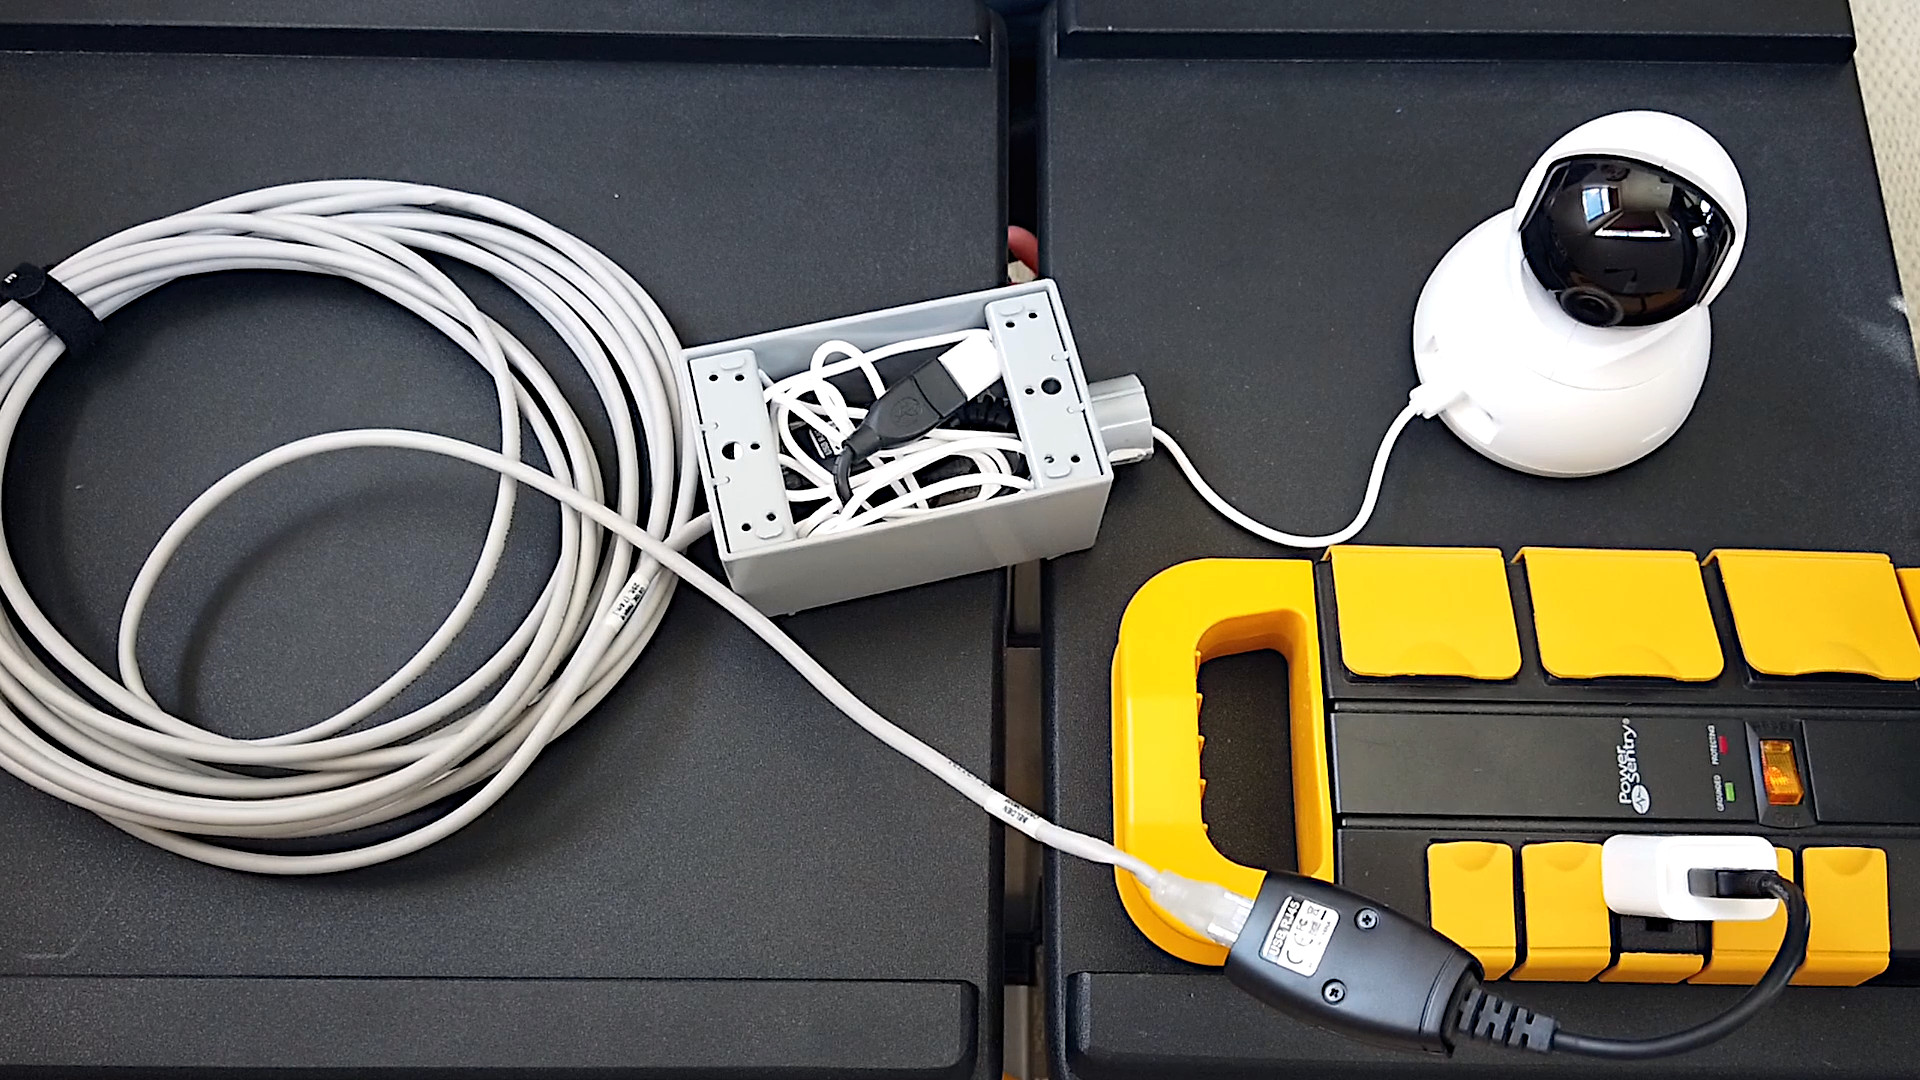 Blog_150 ft USB power cable – How to Power USB Security Cameras and other USB devices over Long Distances